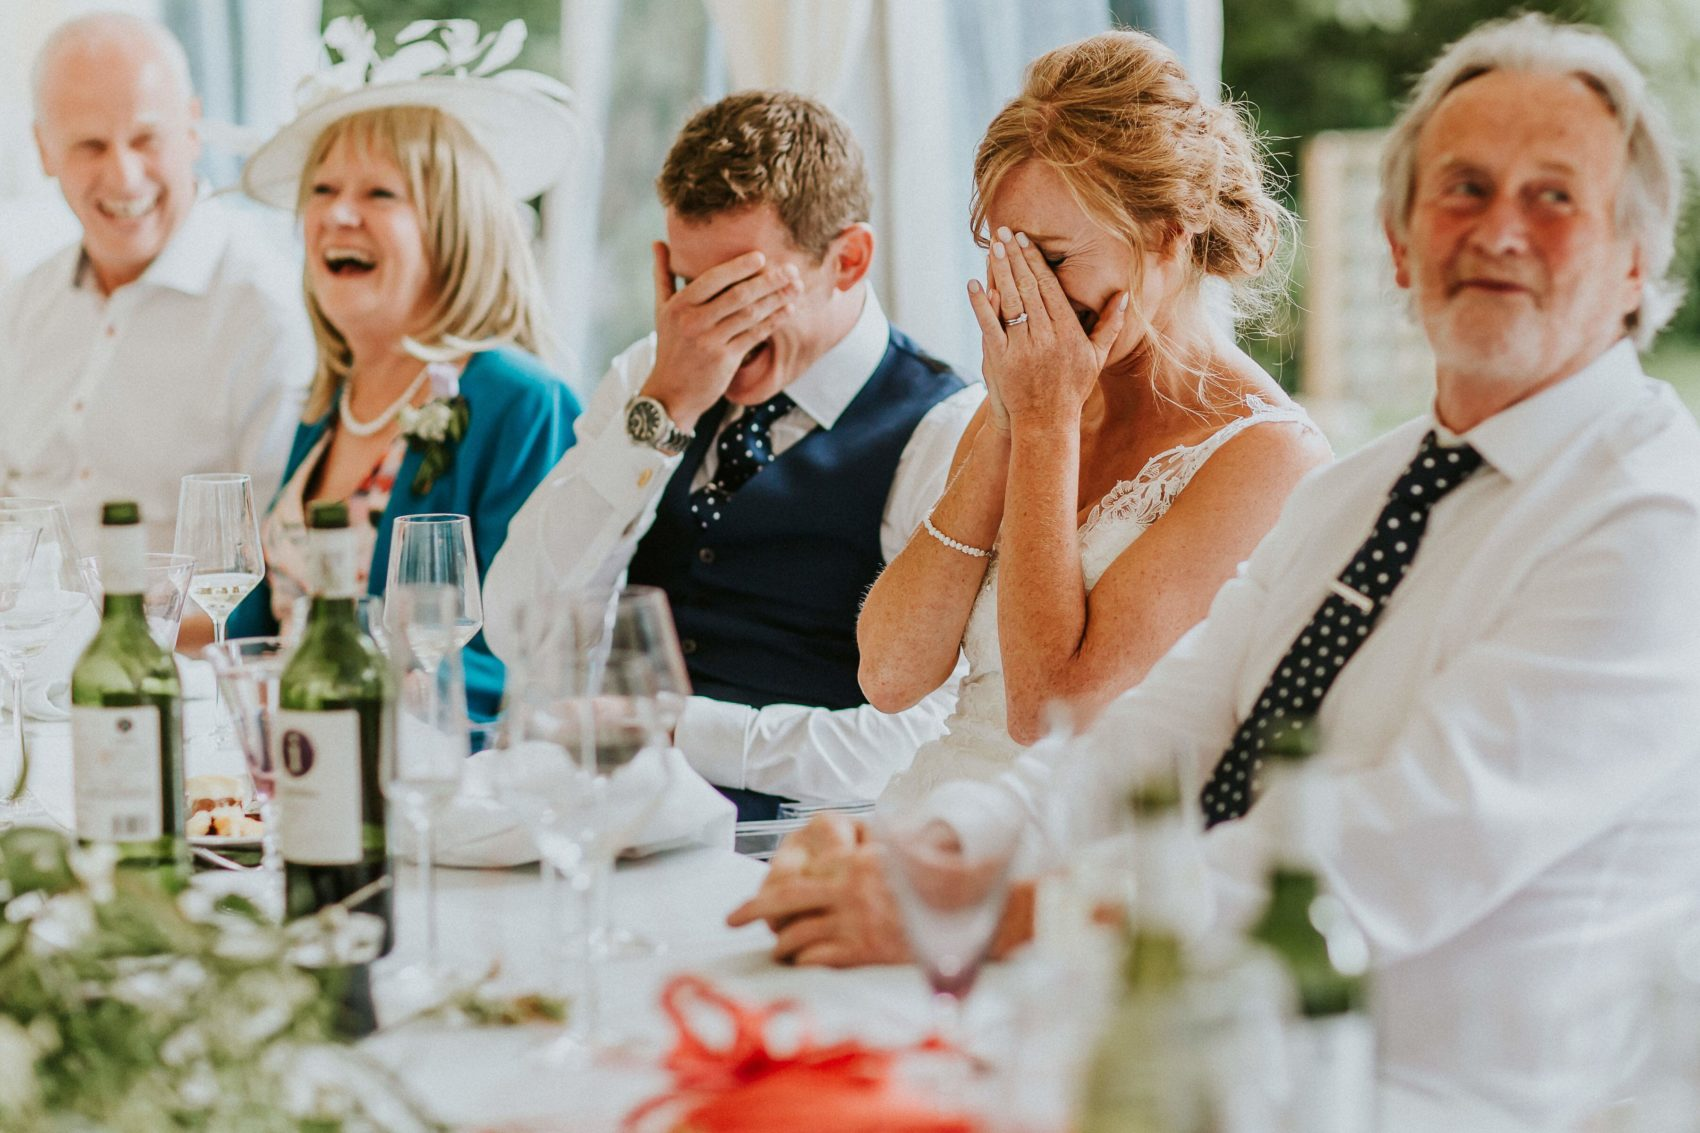 face palm, running out of alcohol, oh no, top table, speeches,